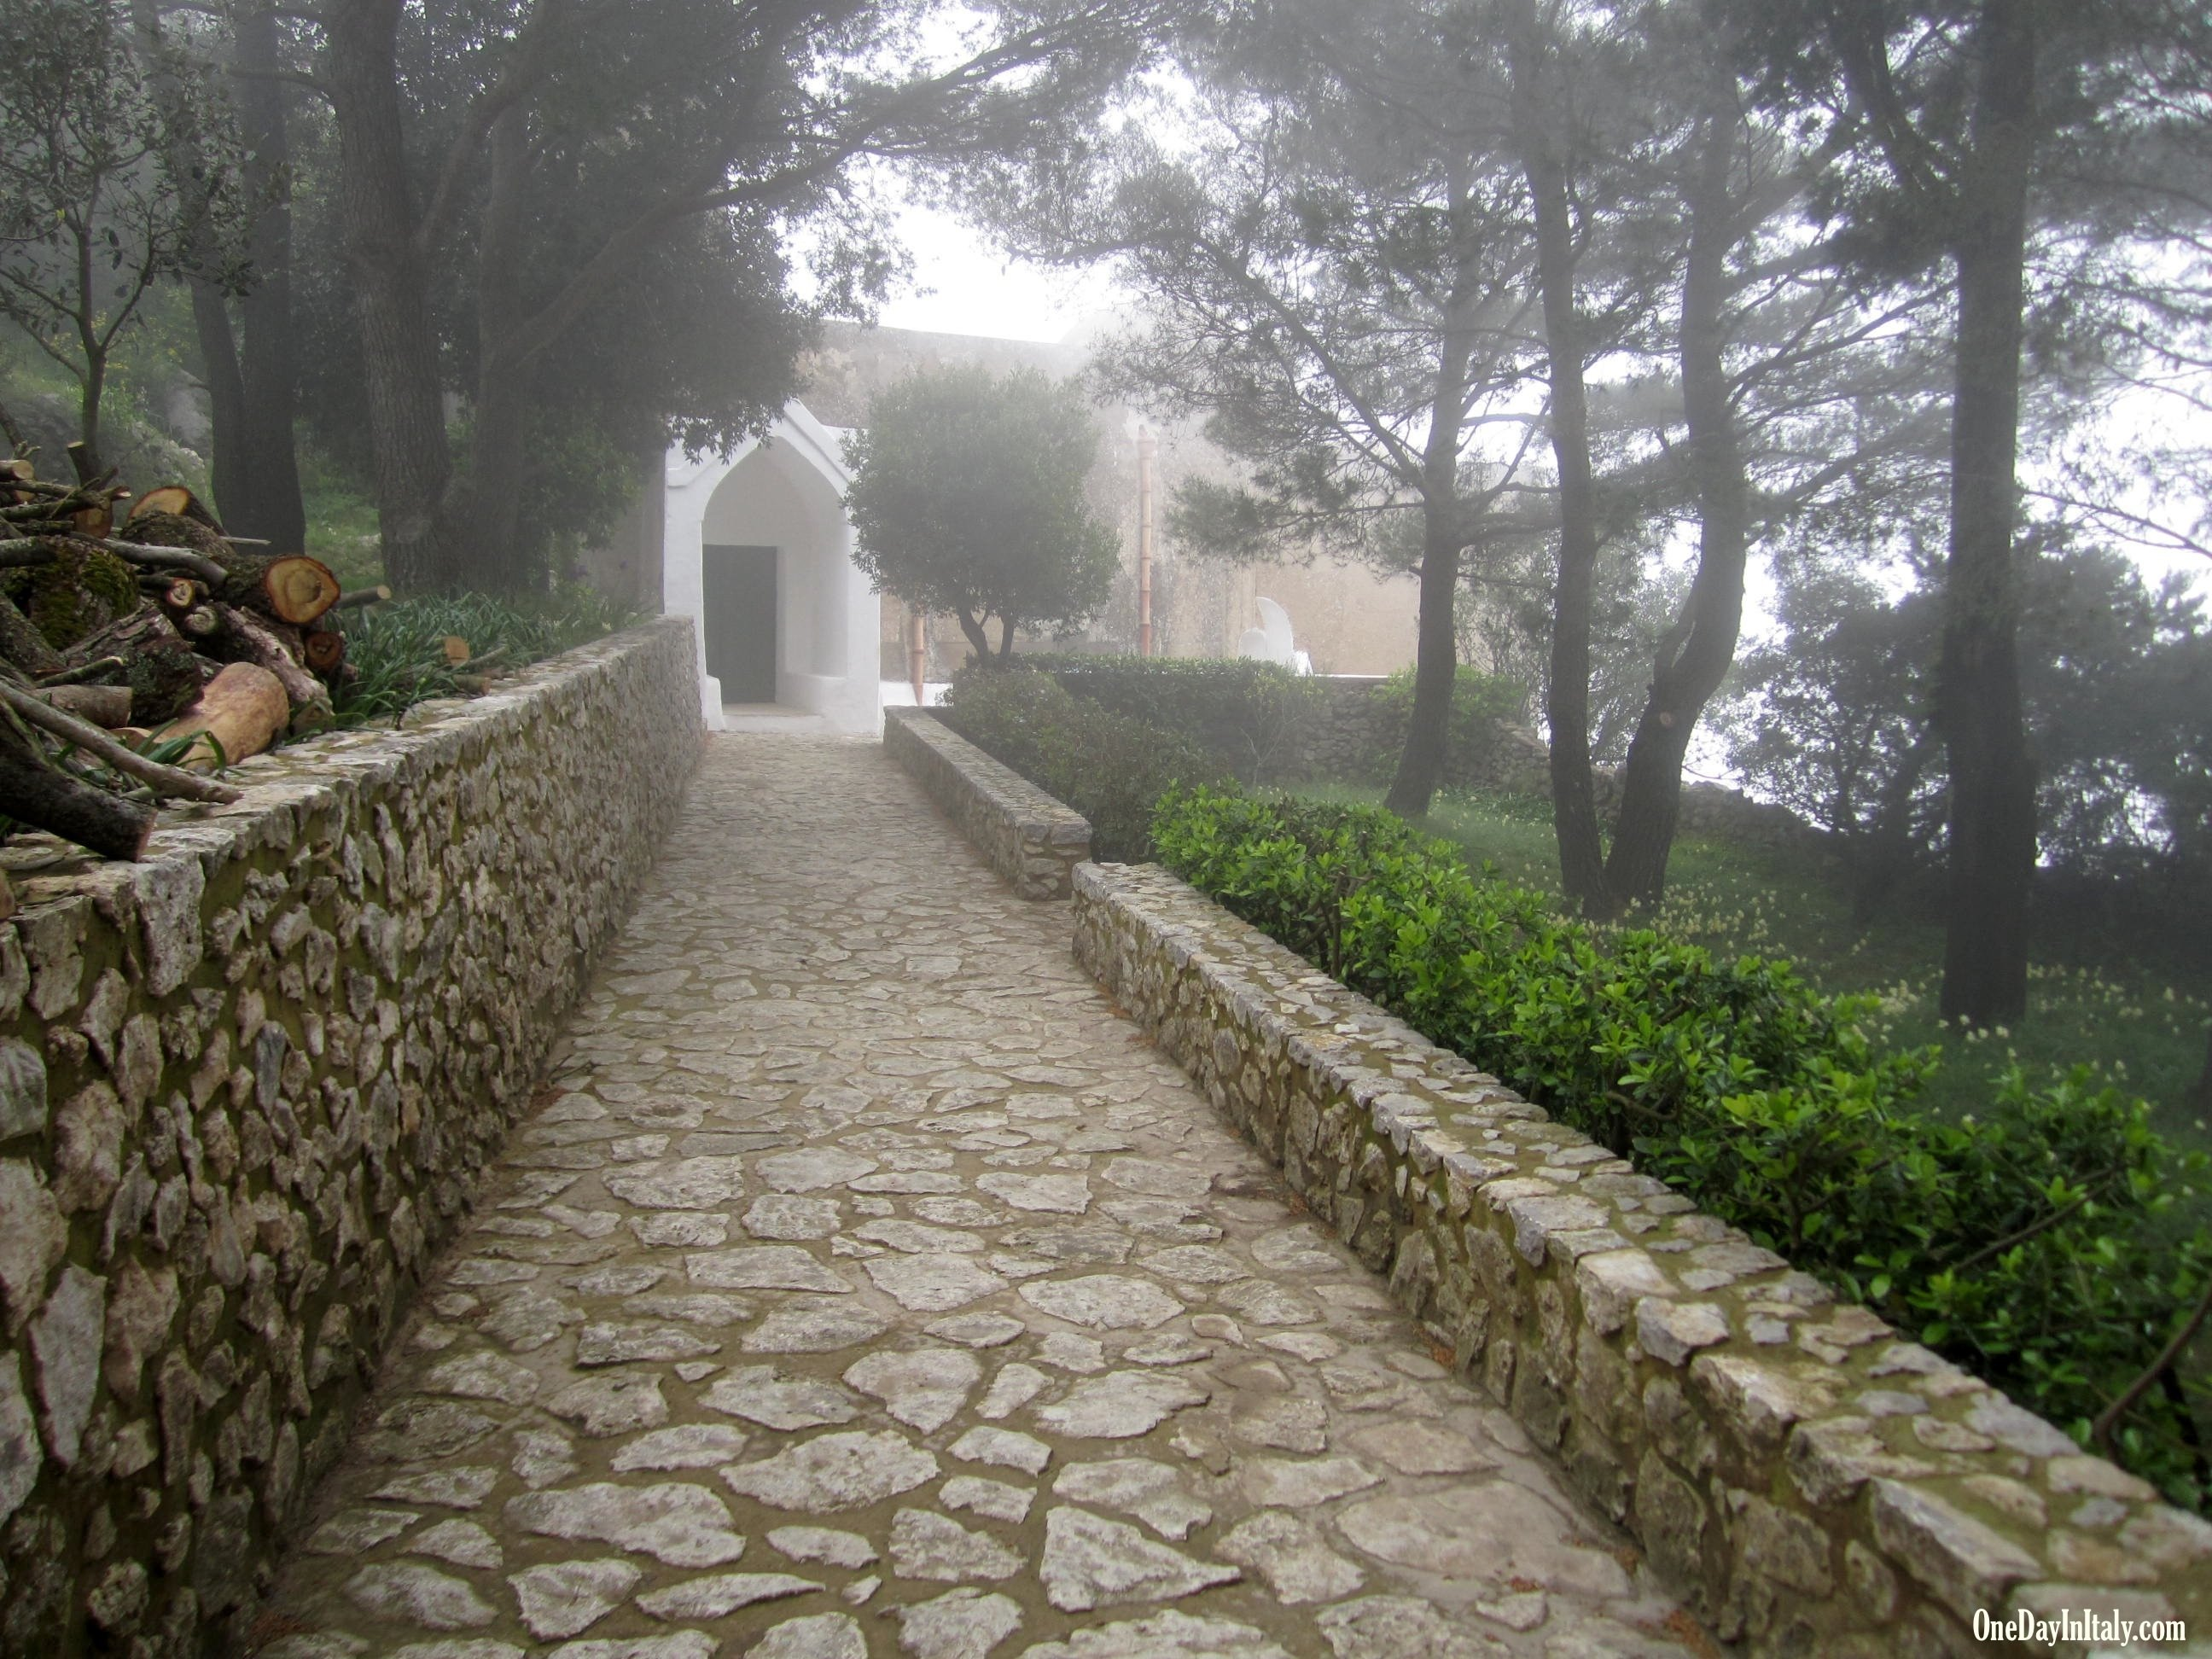 Monastery on the side of Mt. Solaro, Isle of Capri